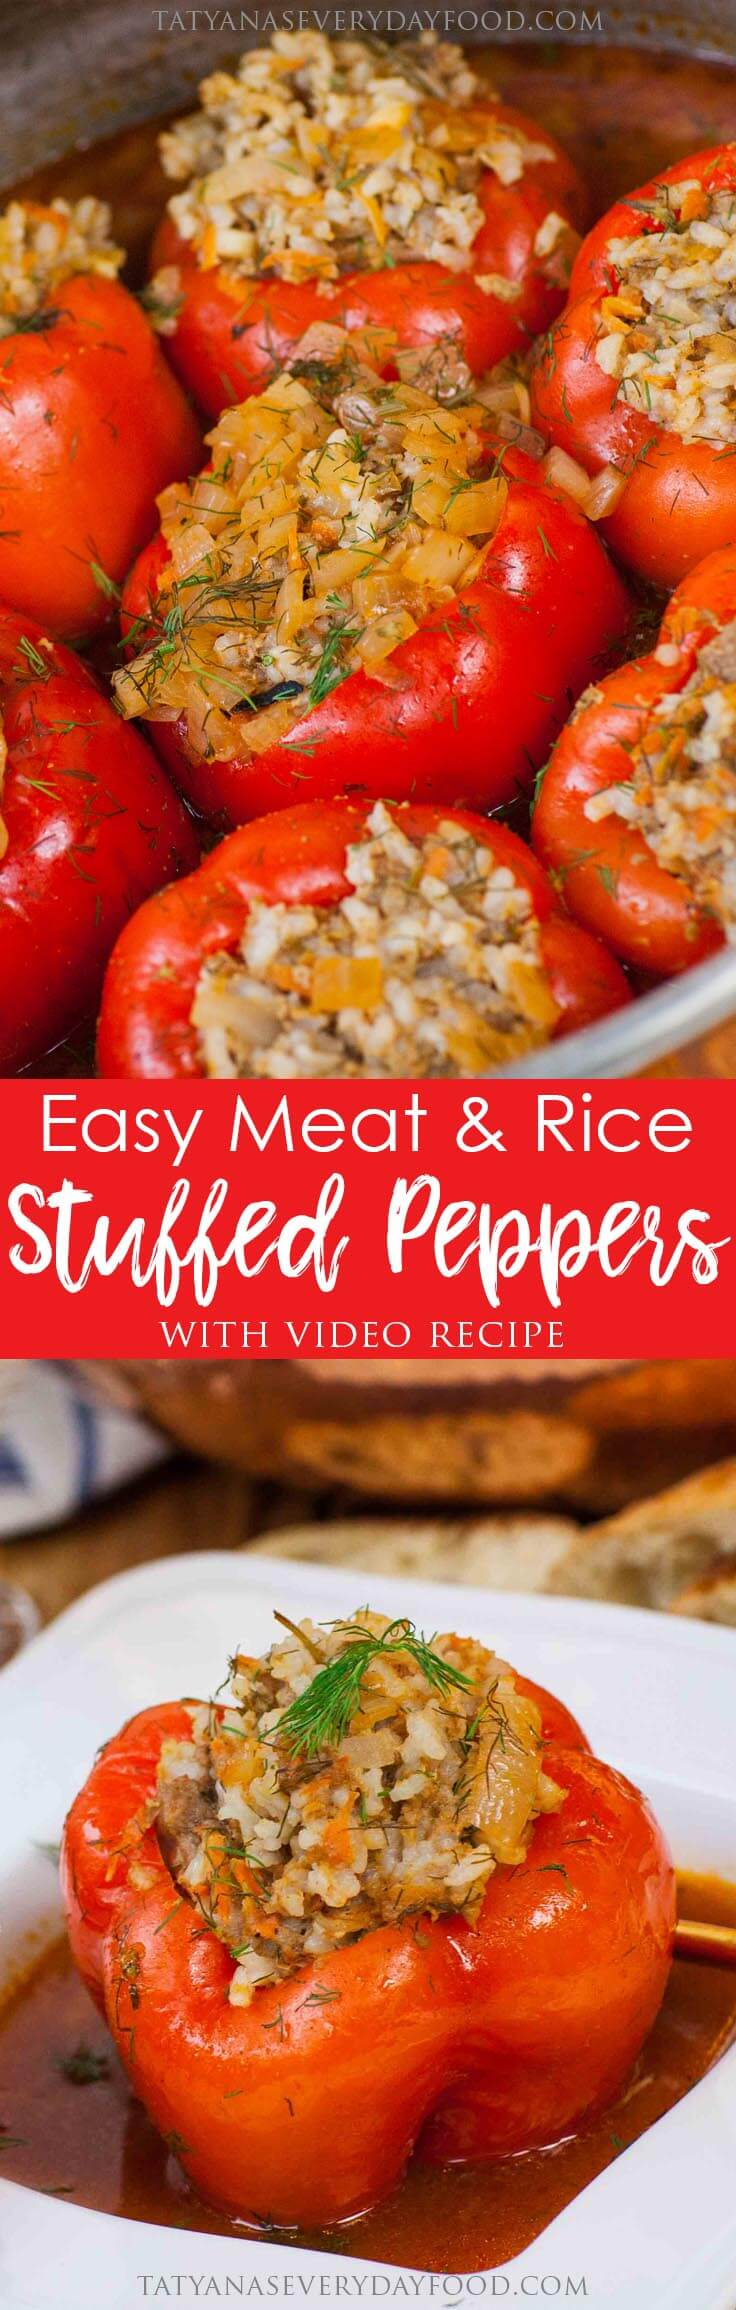 Easy Beef & Rice Stuffed Peppers with video recipe